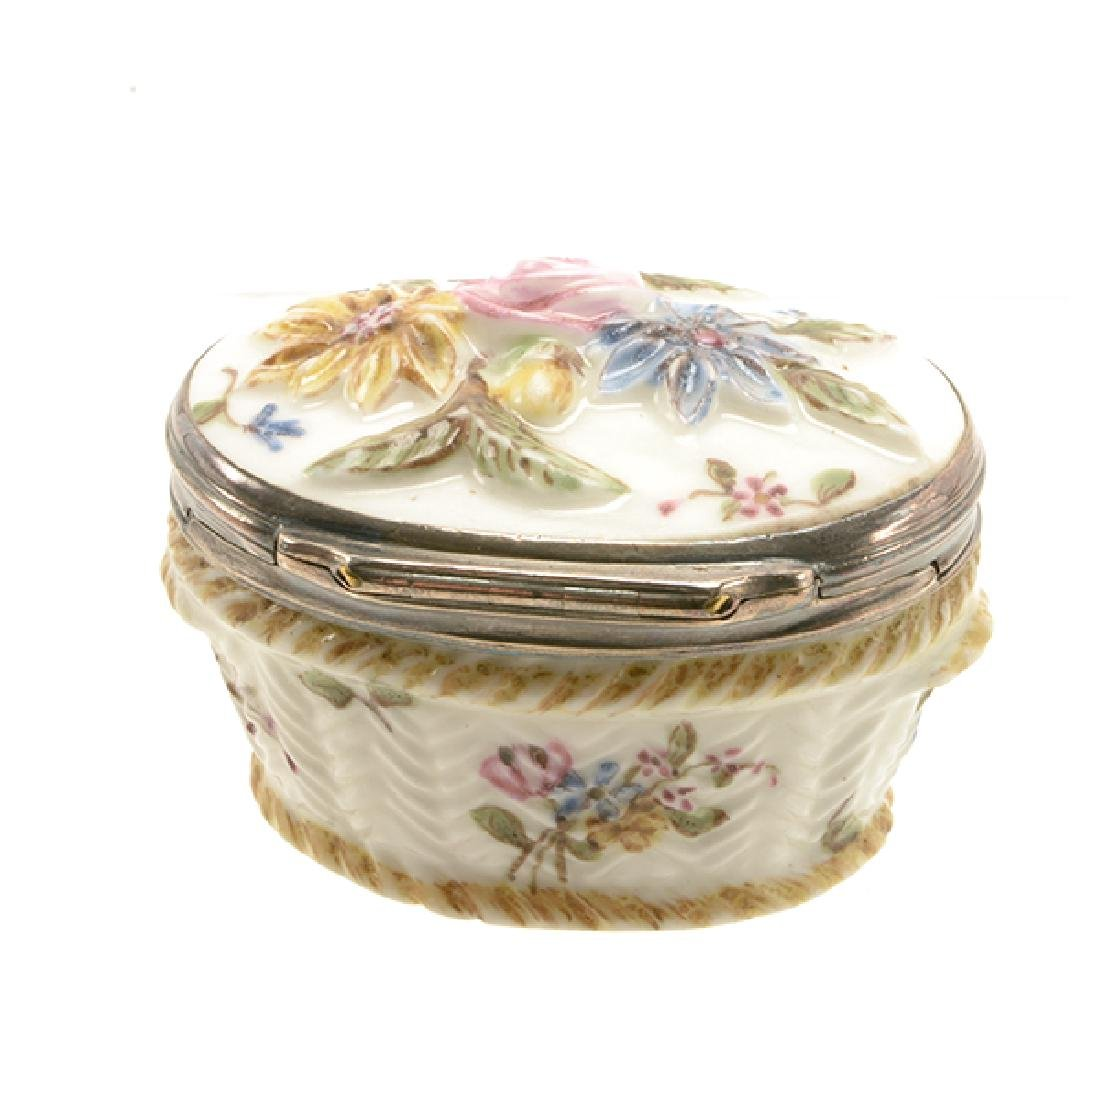 French Mennecy Silver Mounted Porcelain Snuff Box - 3